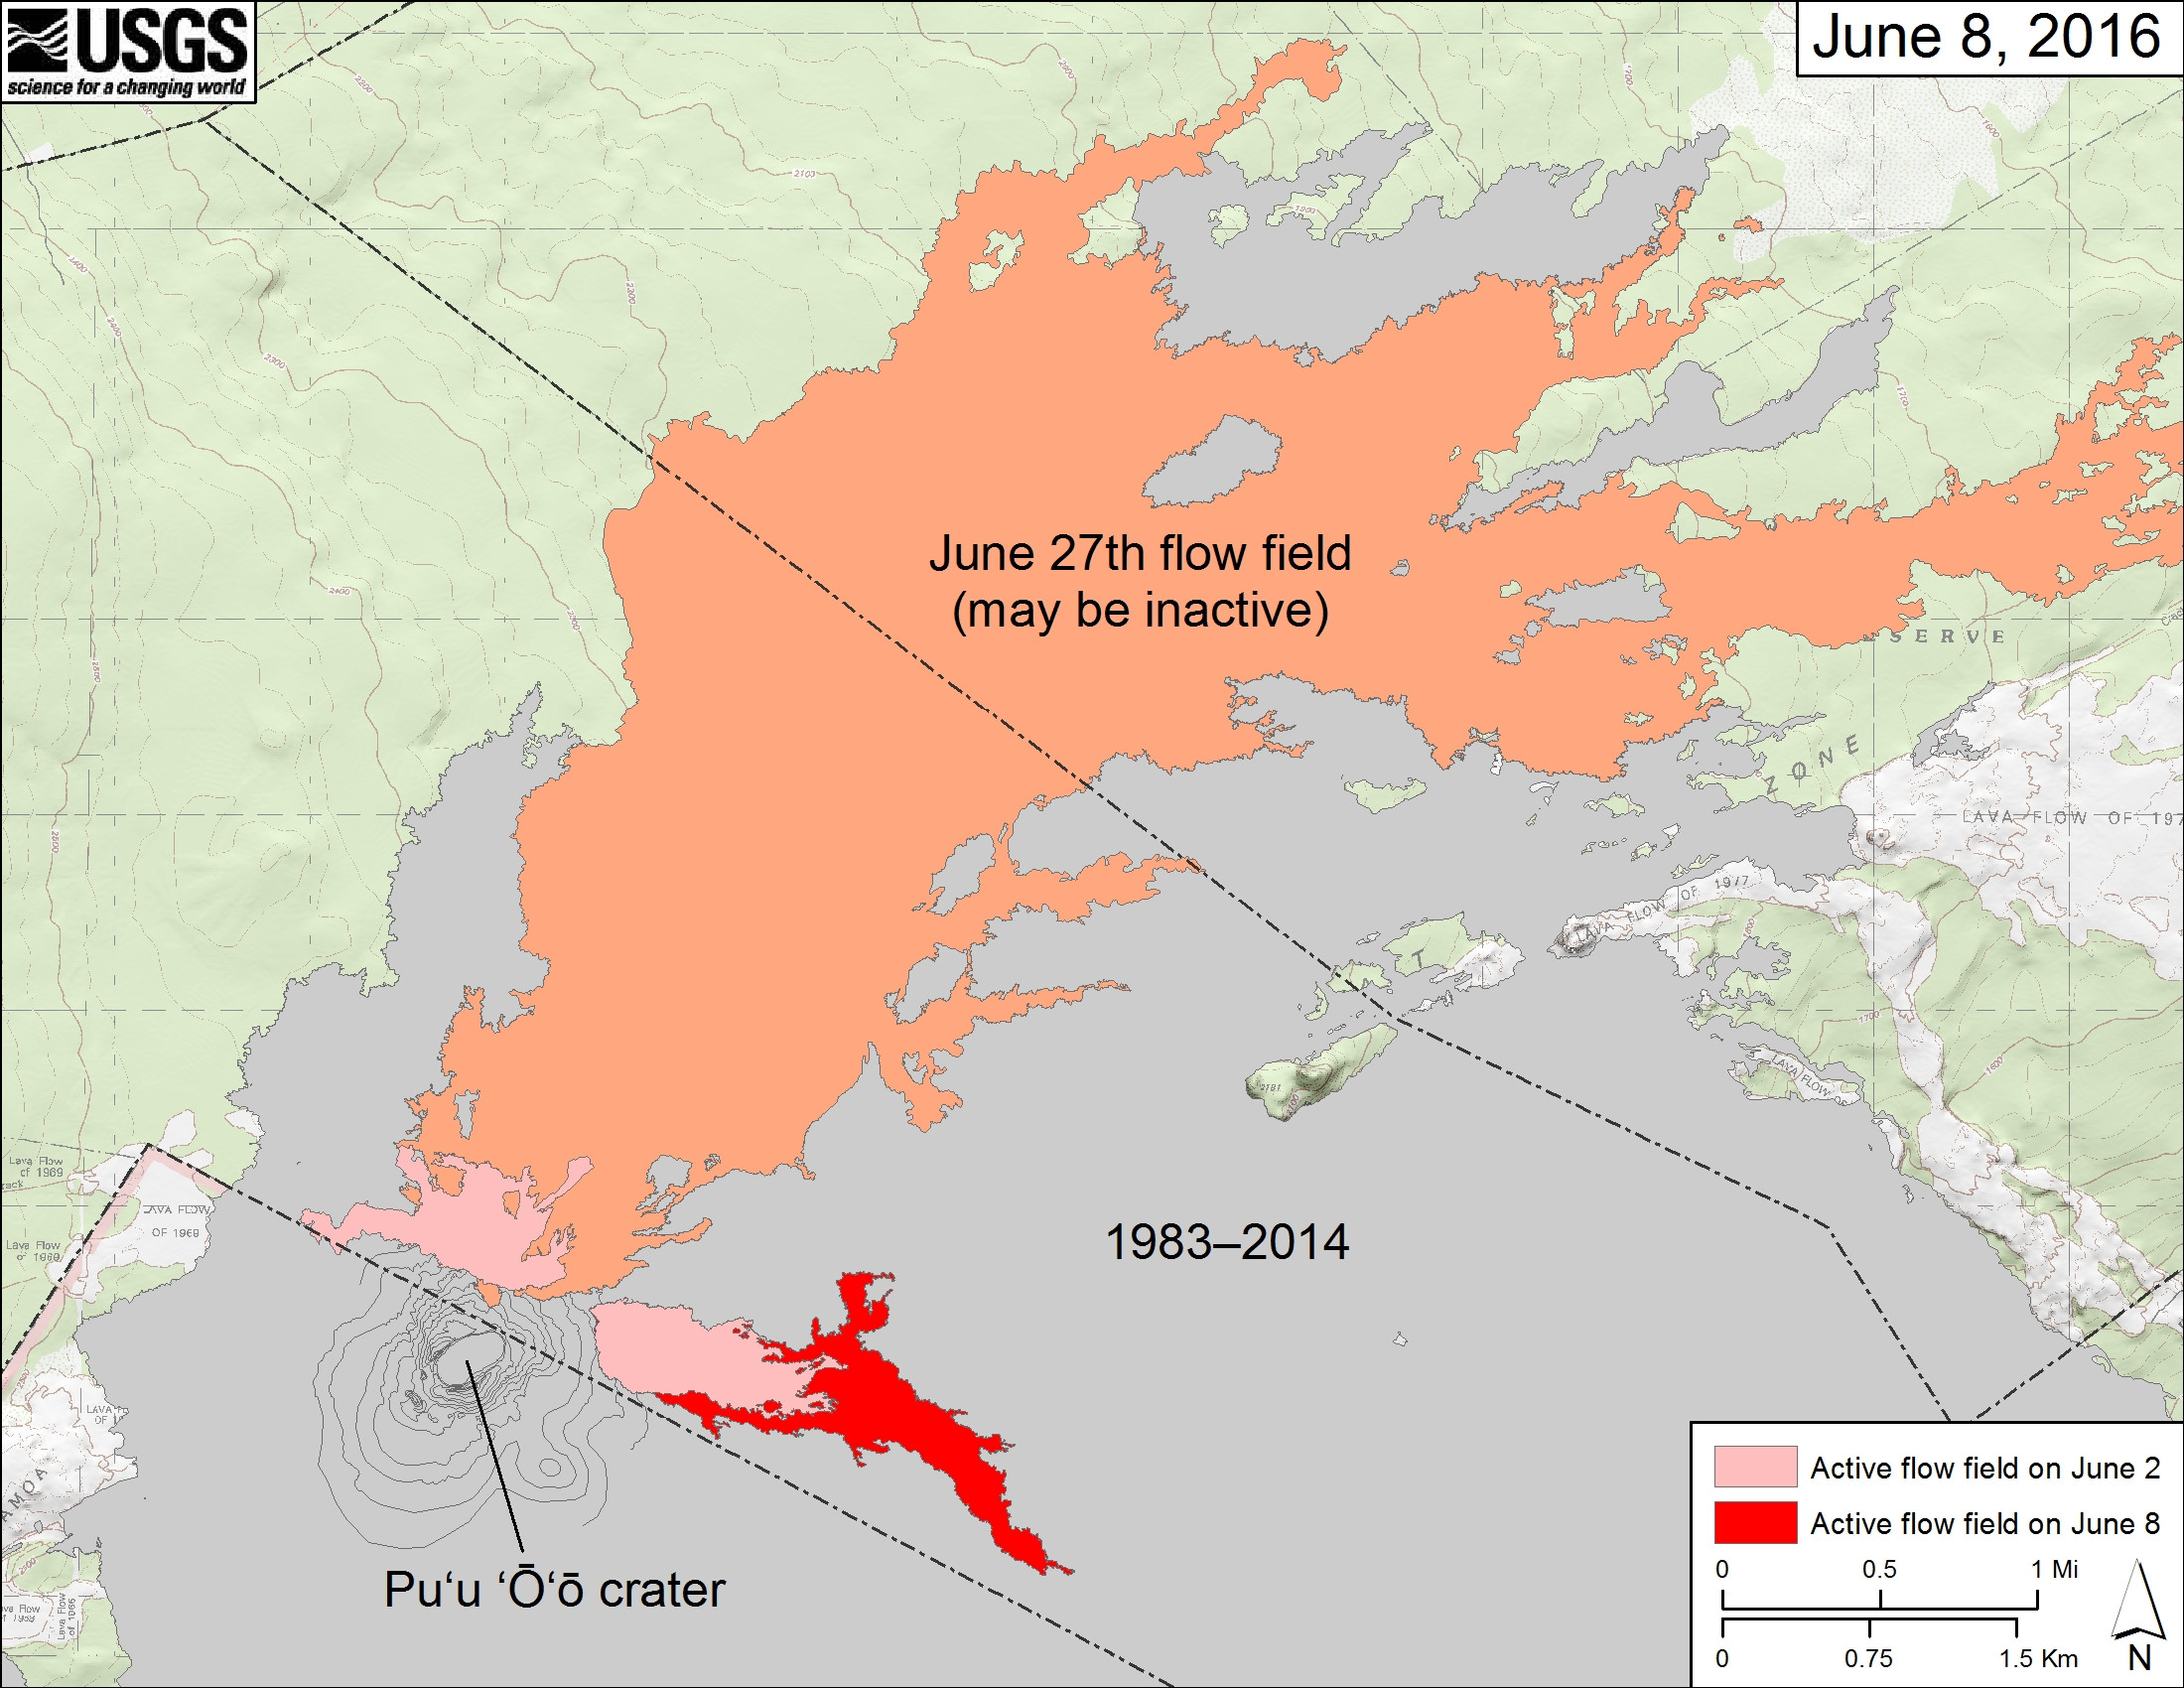 "This USGS map shows ""recent changes to Kīlauea's active East Rift Zone lava flow field. The area covered by the June 27th flow (which may be inactive) as of June 2 is shown in orange. The areas covered by the recent breakouts at Puʻu ʻŌʻō as of June 2 are shown in pink, while widening and advancement of the new breakouts as mapped on June 8 is shown in red. The northern breakout is inactive. Puʻu ʻŌʻō lava flows erupted prior to June 27, 2014, are shown in gray. Puʻu ʻŌʻō is at lower left."""